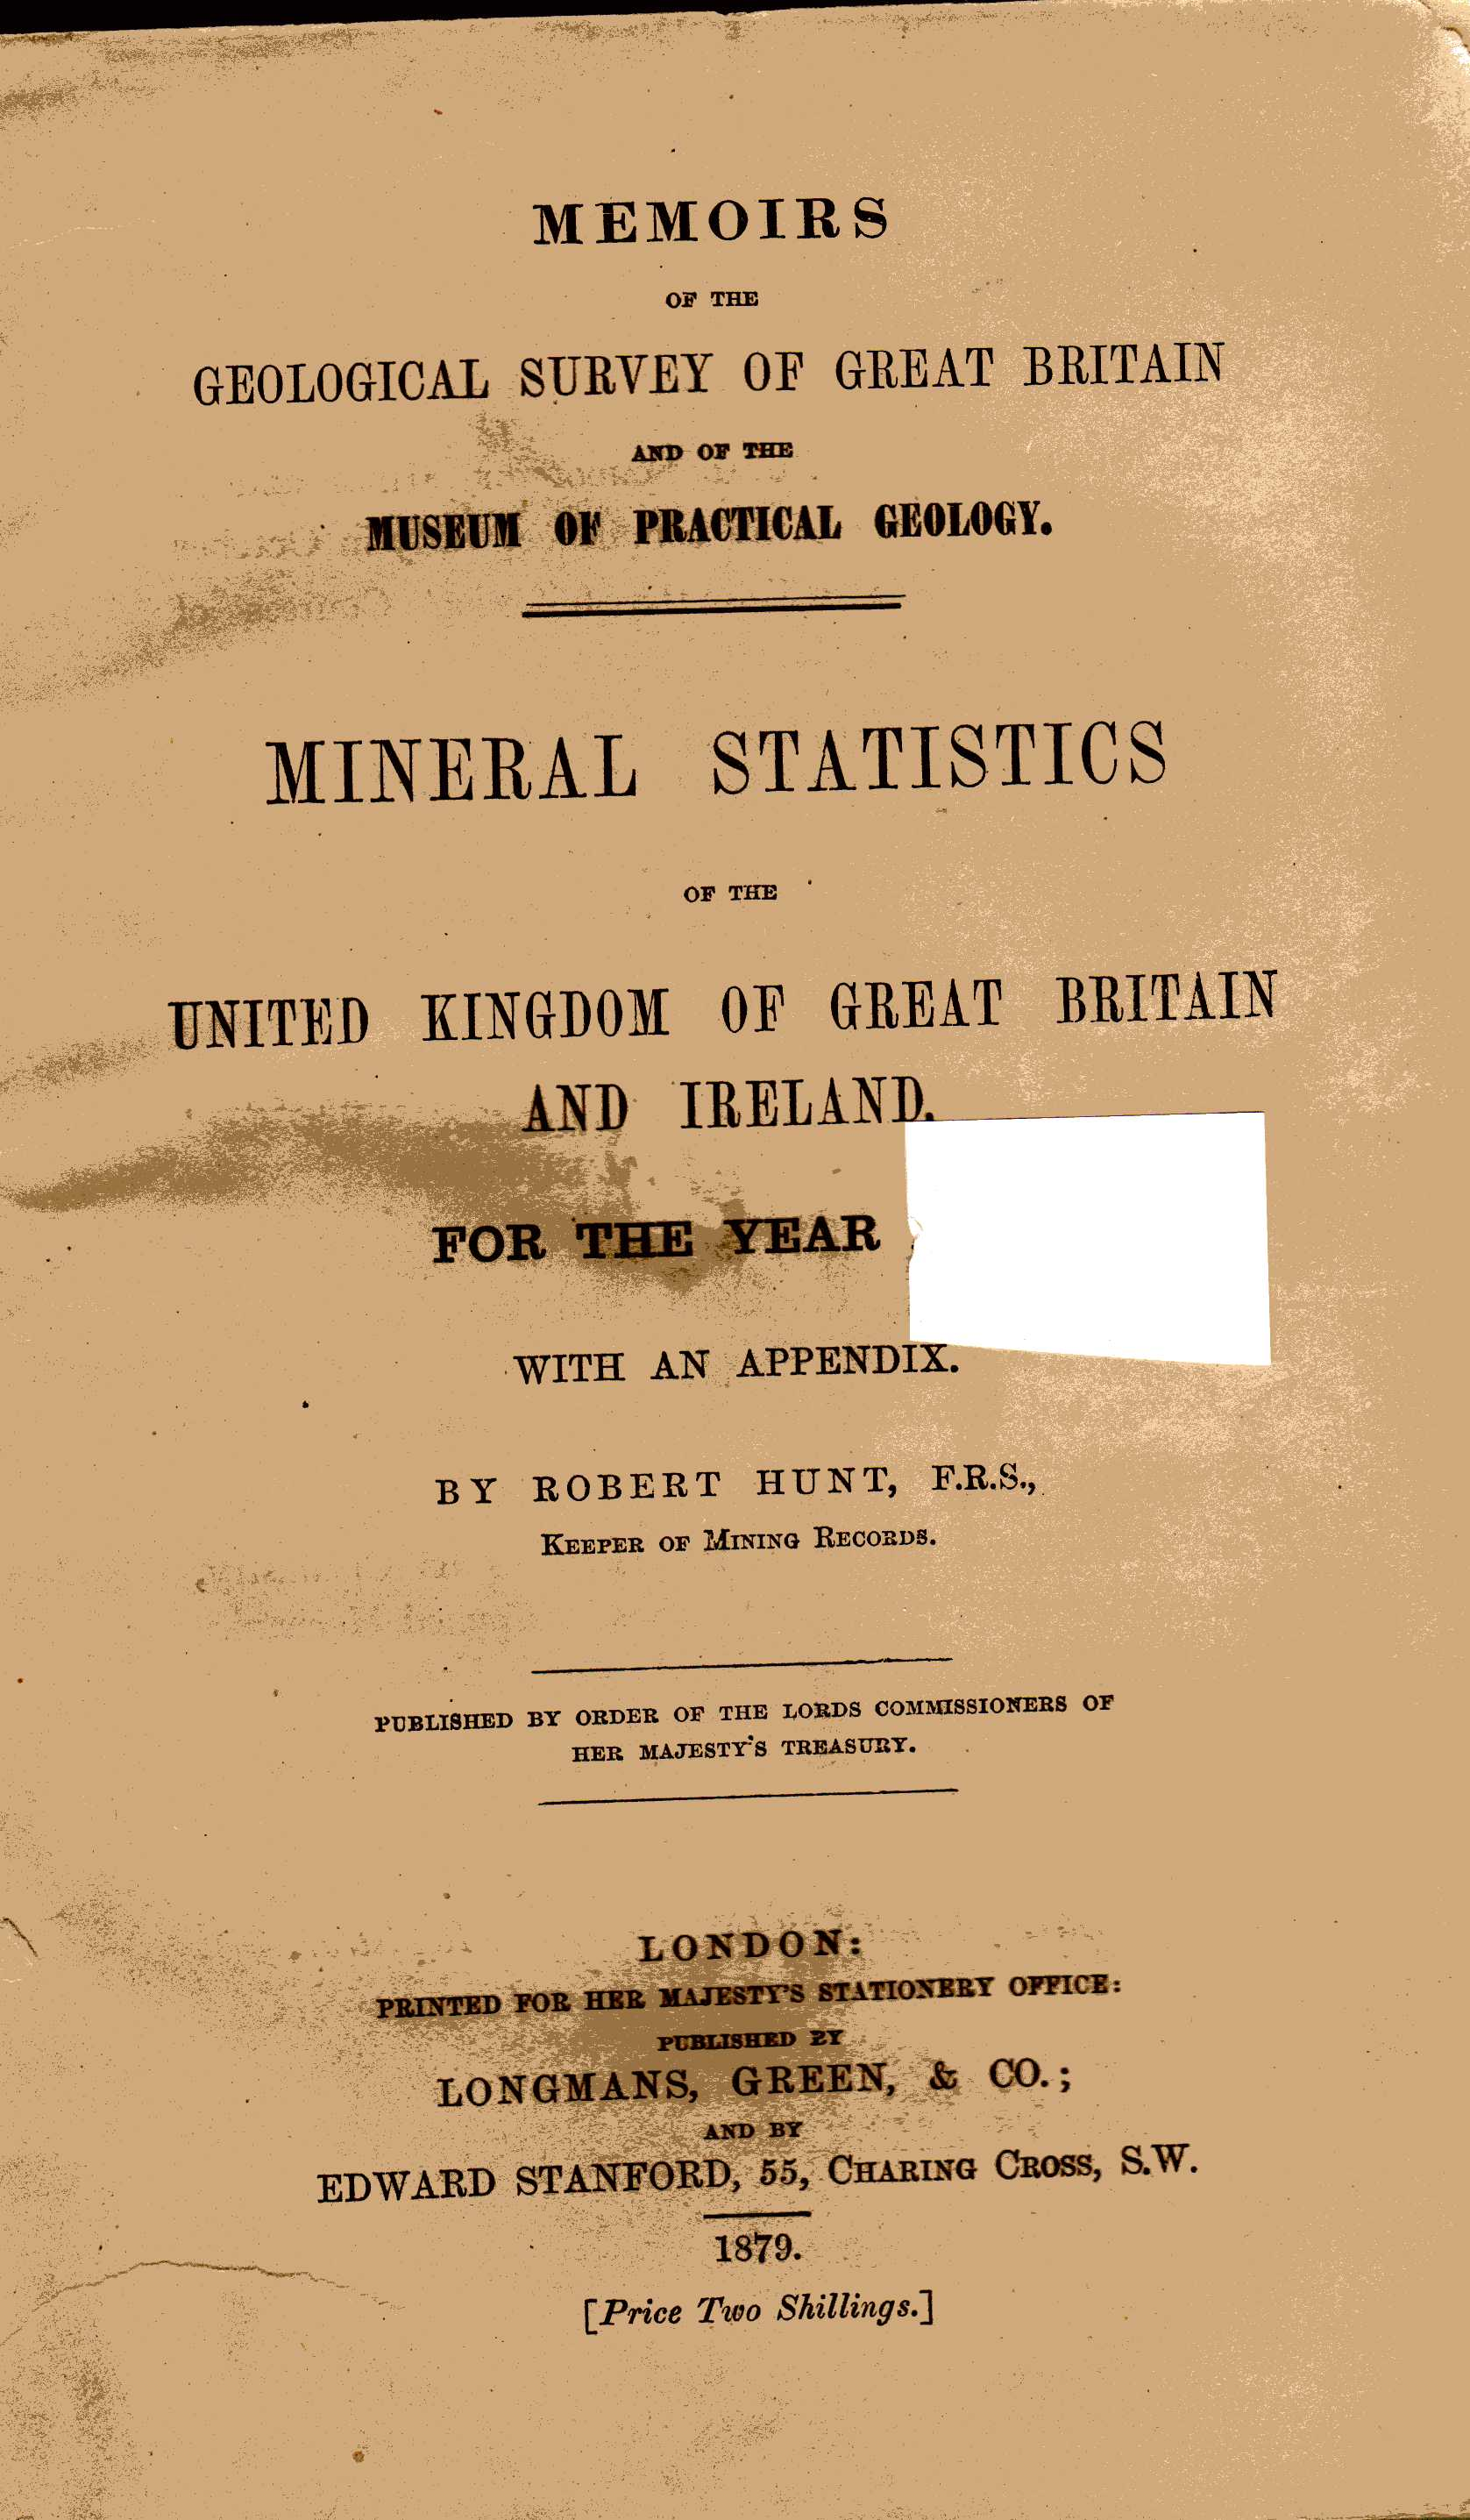 Geological Survey of Great Briitain - Mineral Statistics of the United Kingdom and Ireland for 1867